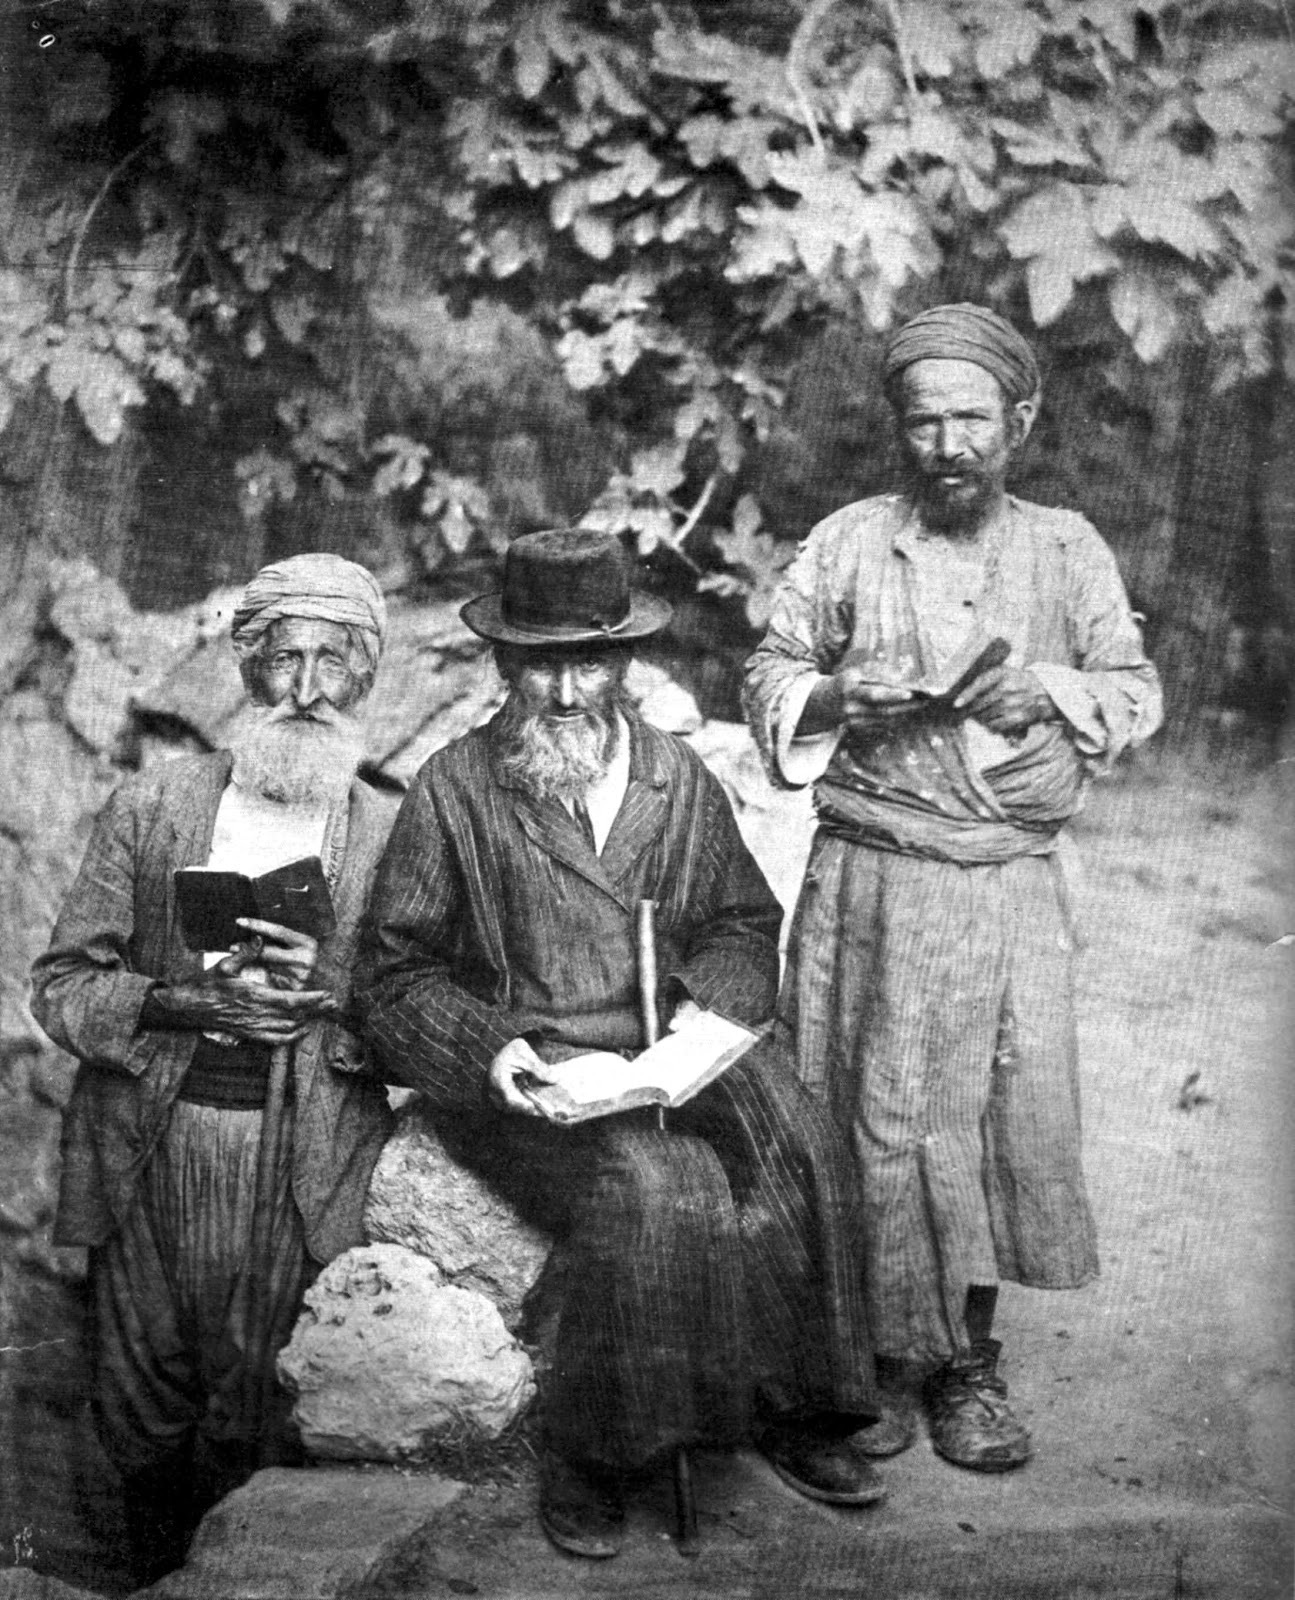 shows three elderly Jewish